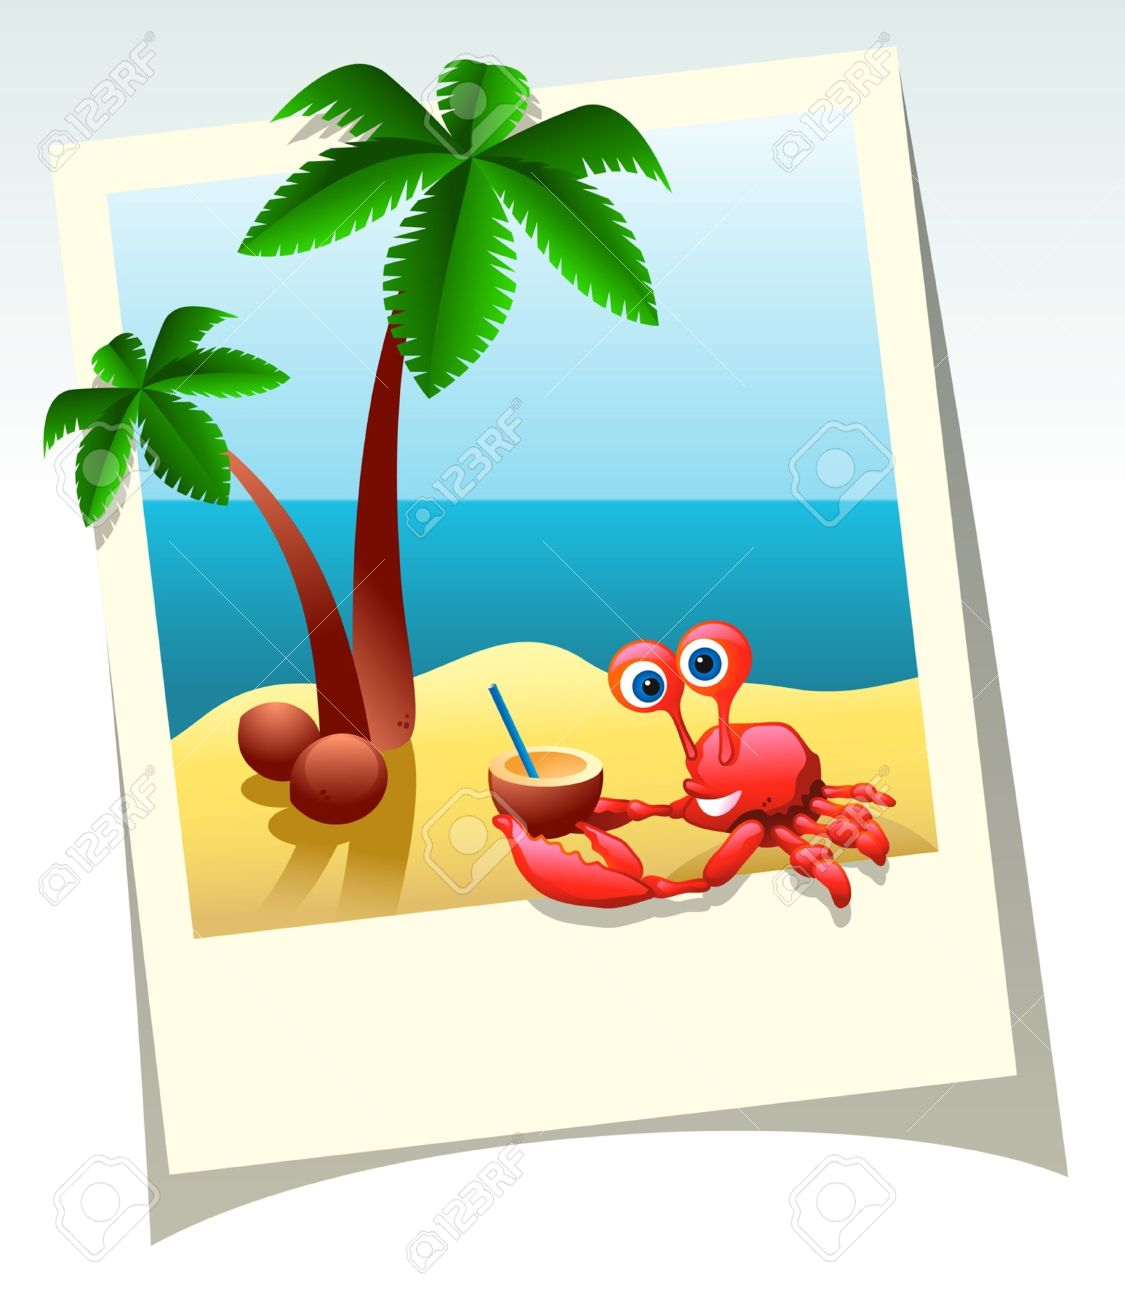 Cartoon Summer Shot Of Sea Beach, Palm Trees, And Crab With.